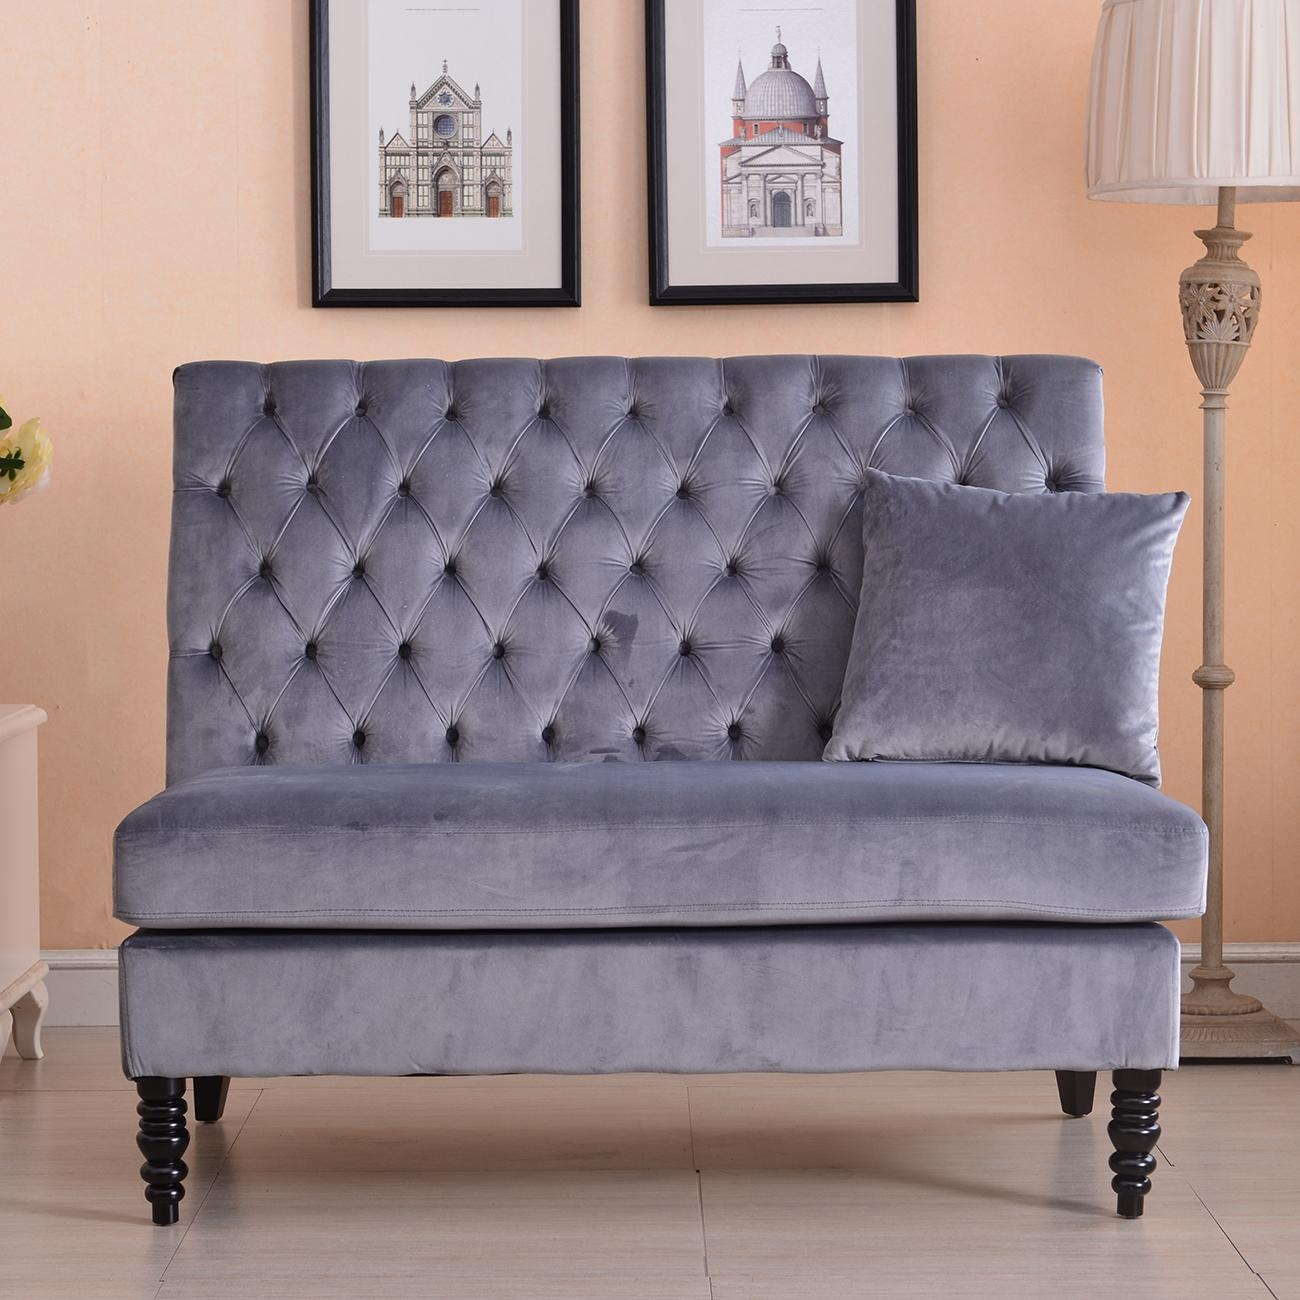 New Modern Tufted Settee Bedroom Bench Sofa High Back Cushion Seat throughout Bedroom Bench Sofas